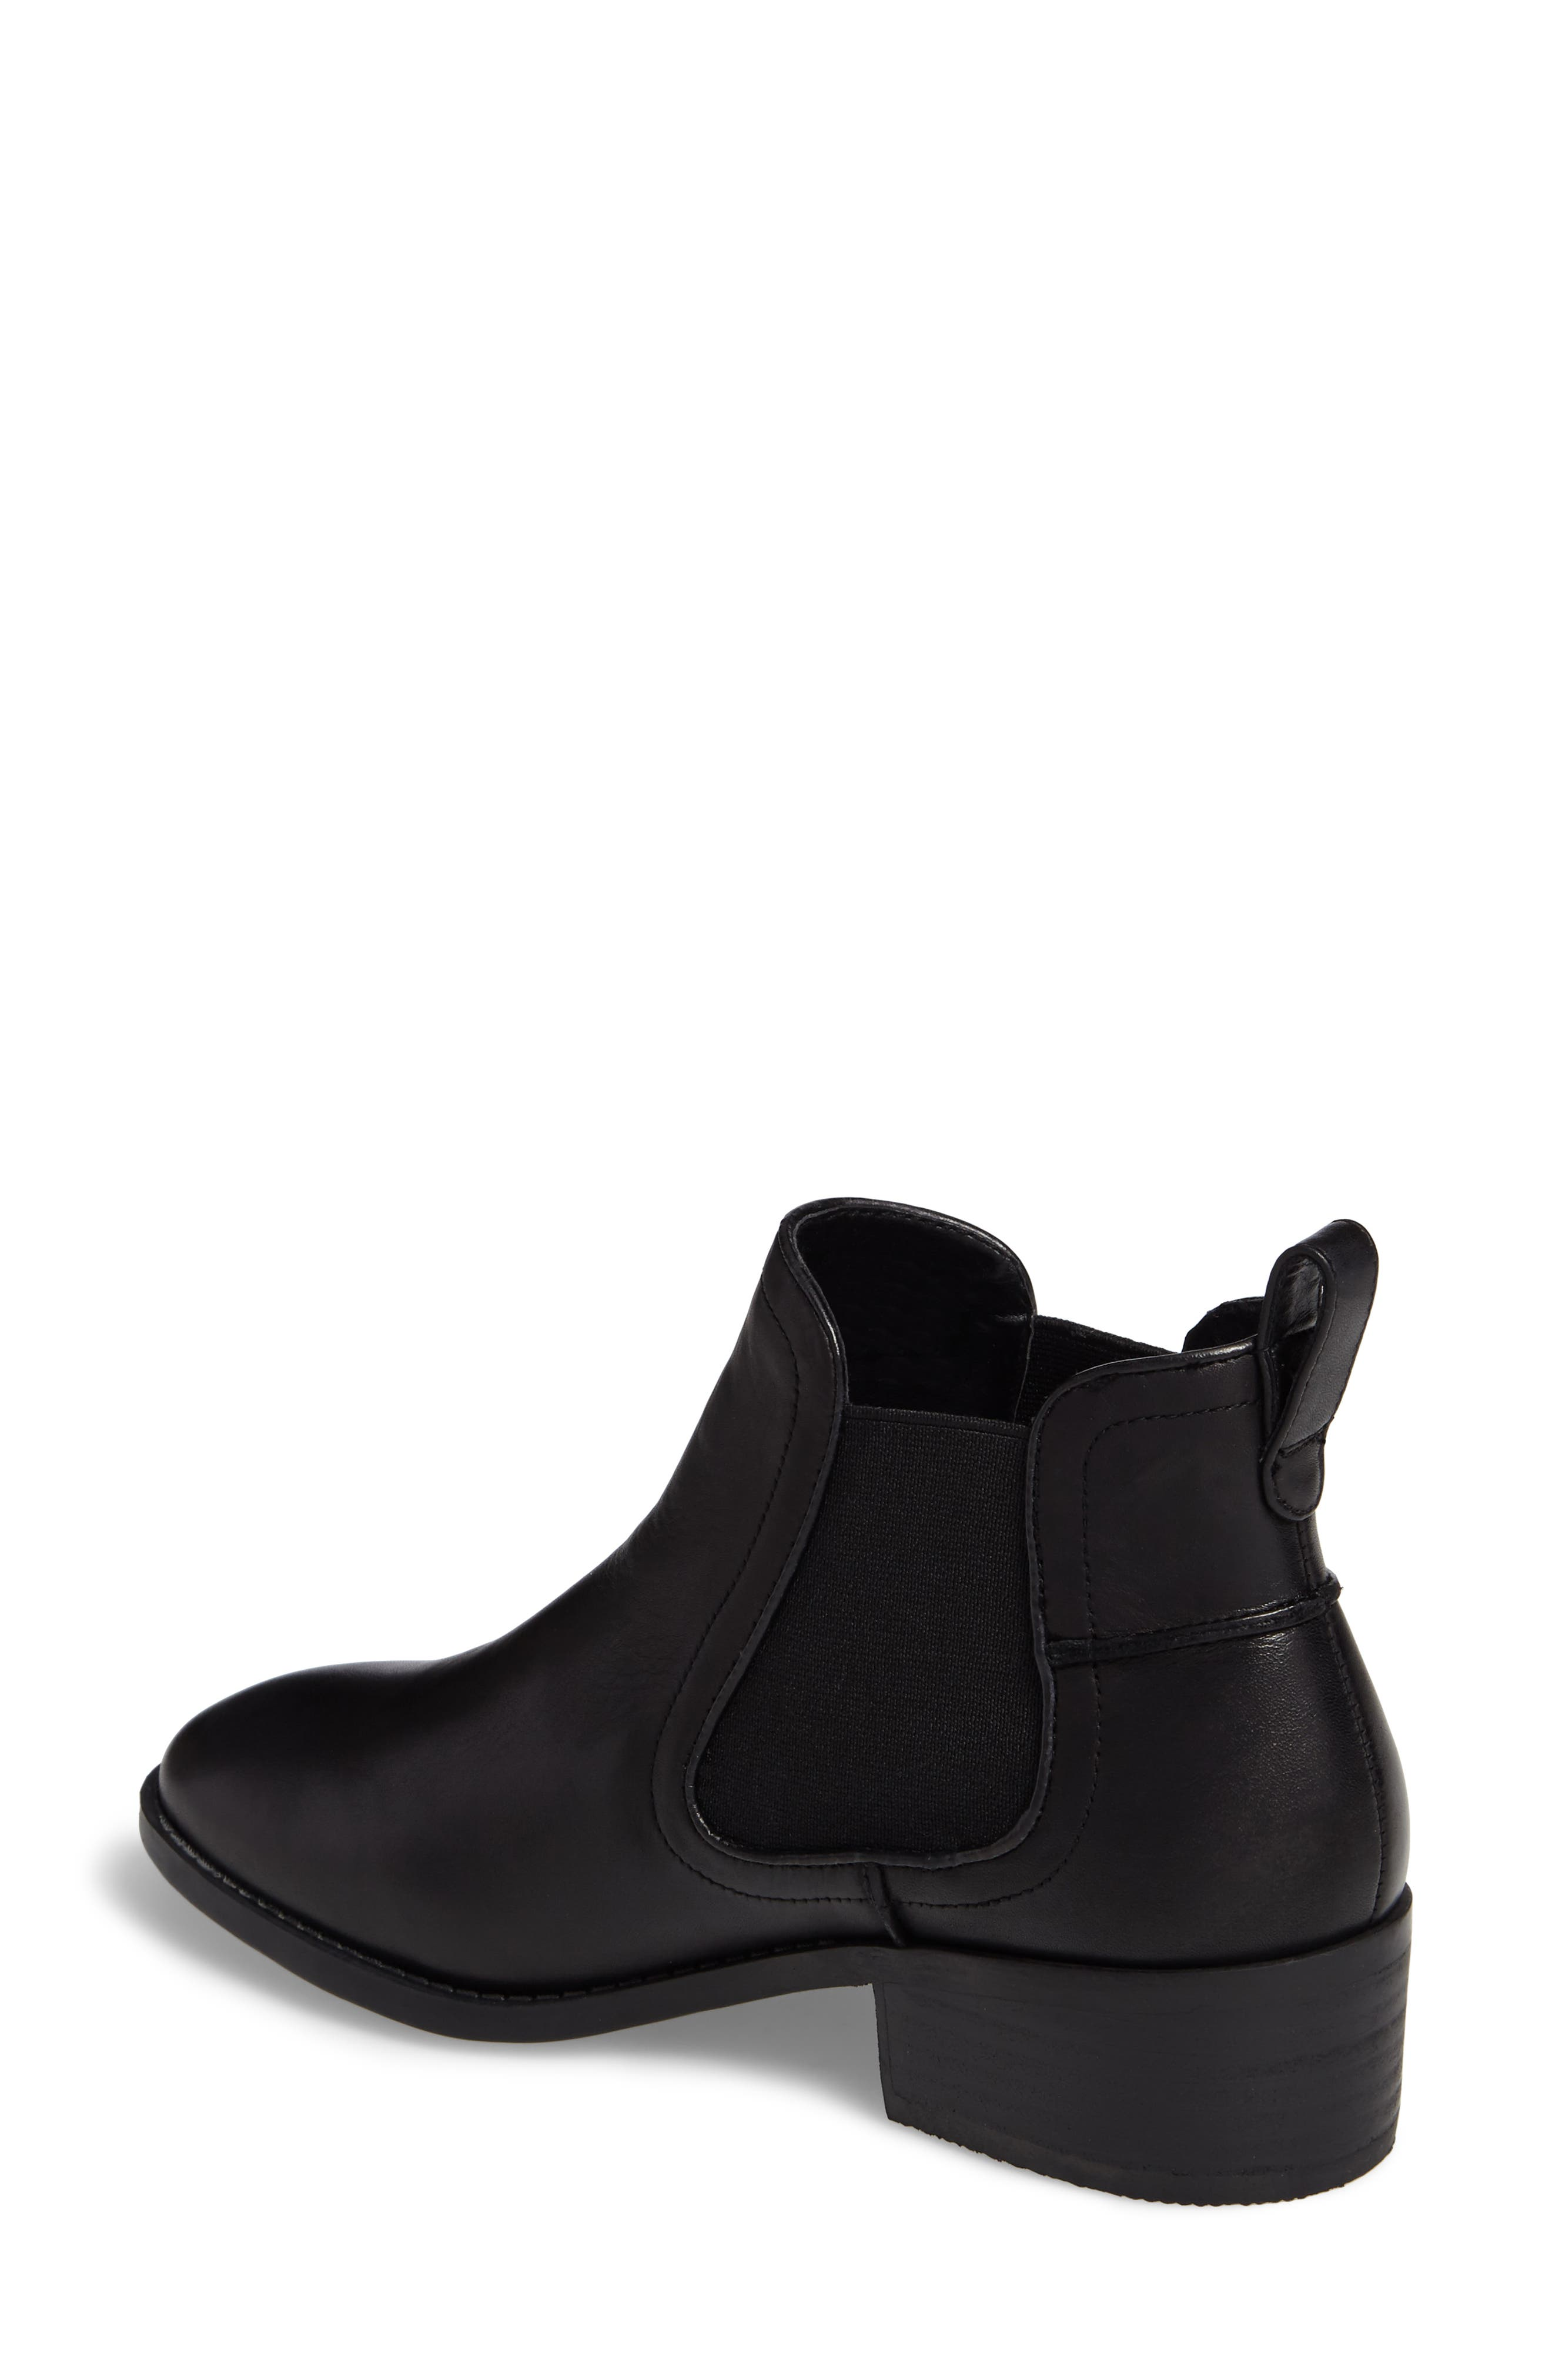 Dicey Chelsea Boot,                             Alternate thumbnail 2, color,                             001